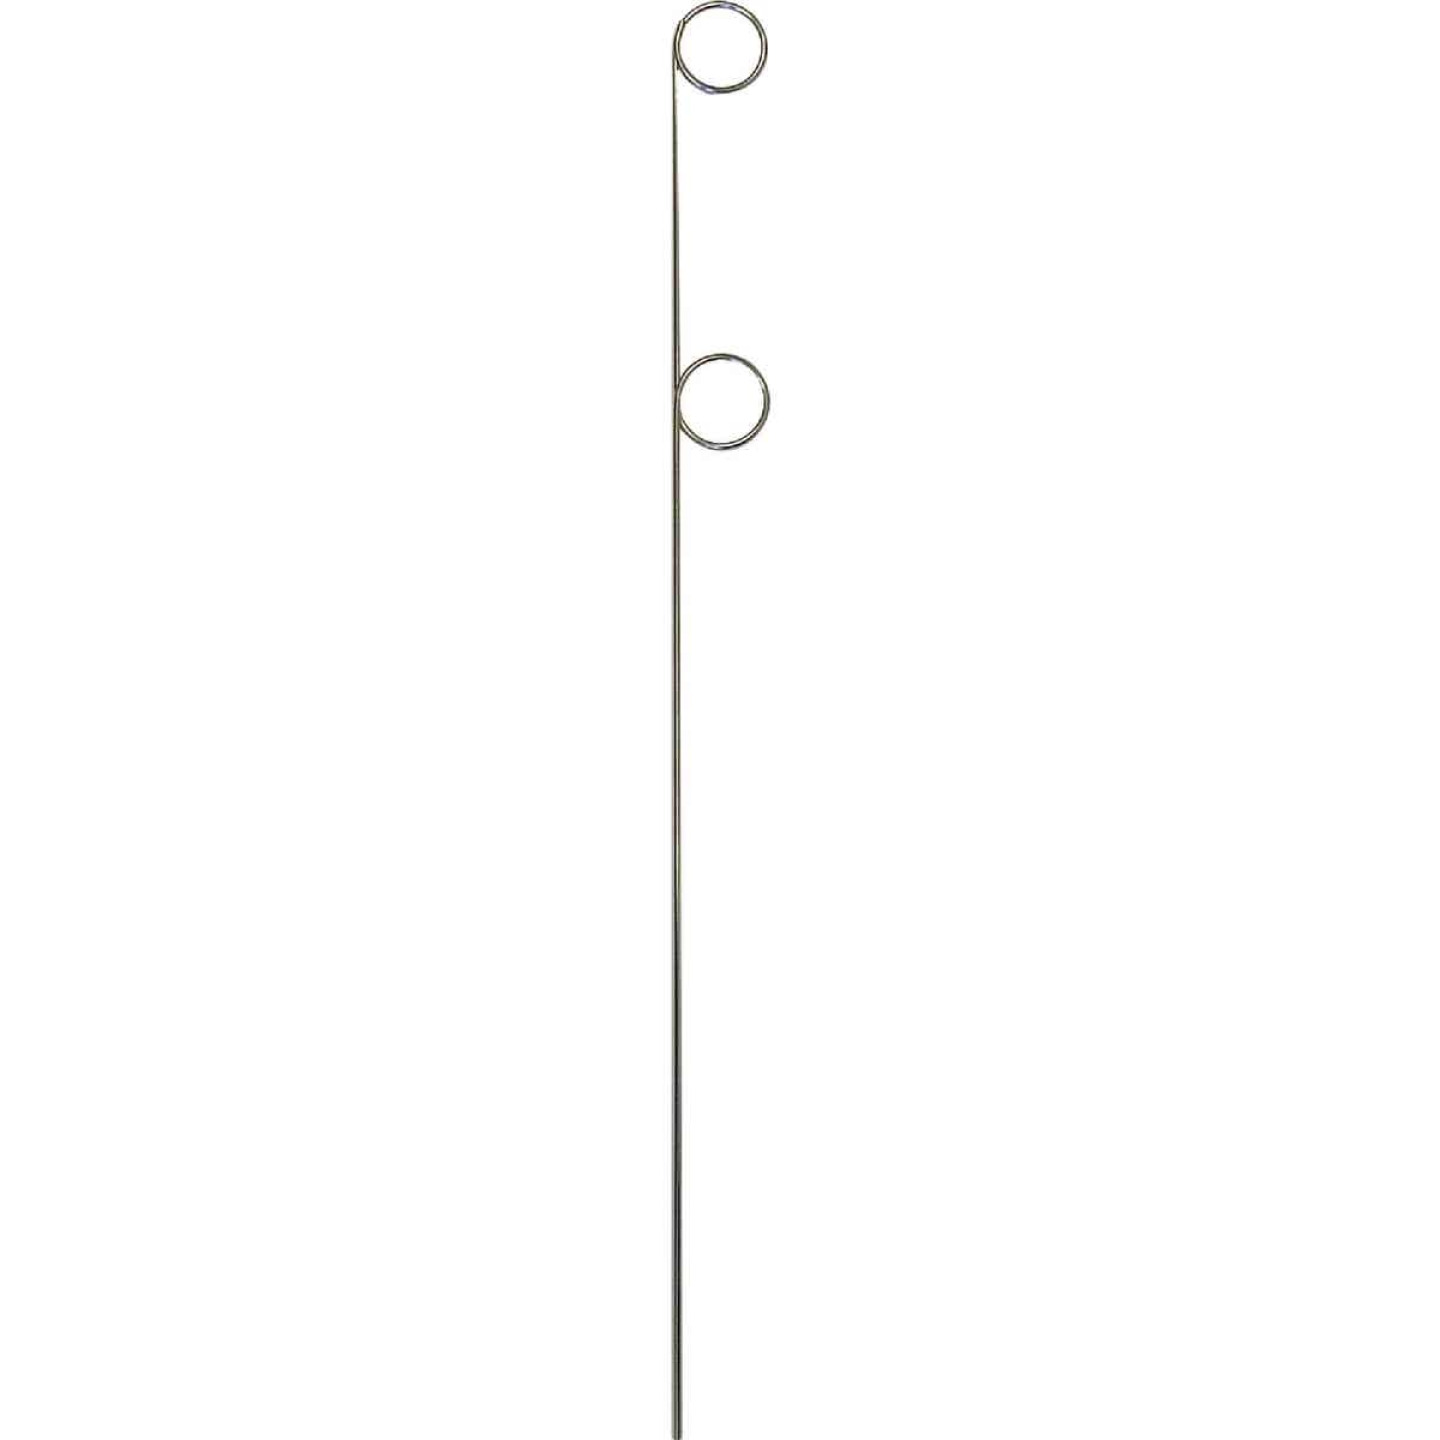 Hy-Ko 1.75 In. x 28 In. Metal Pigtail Sign Stake Image 1